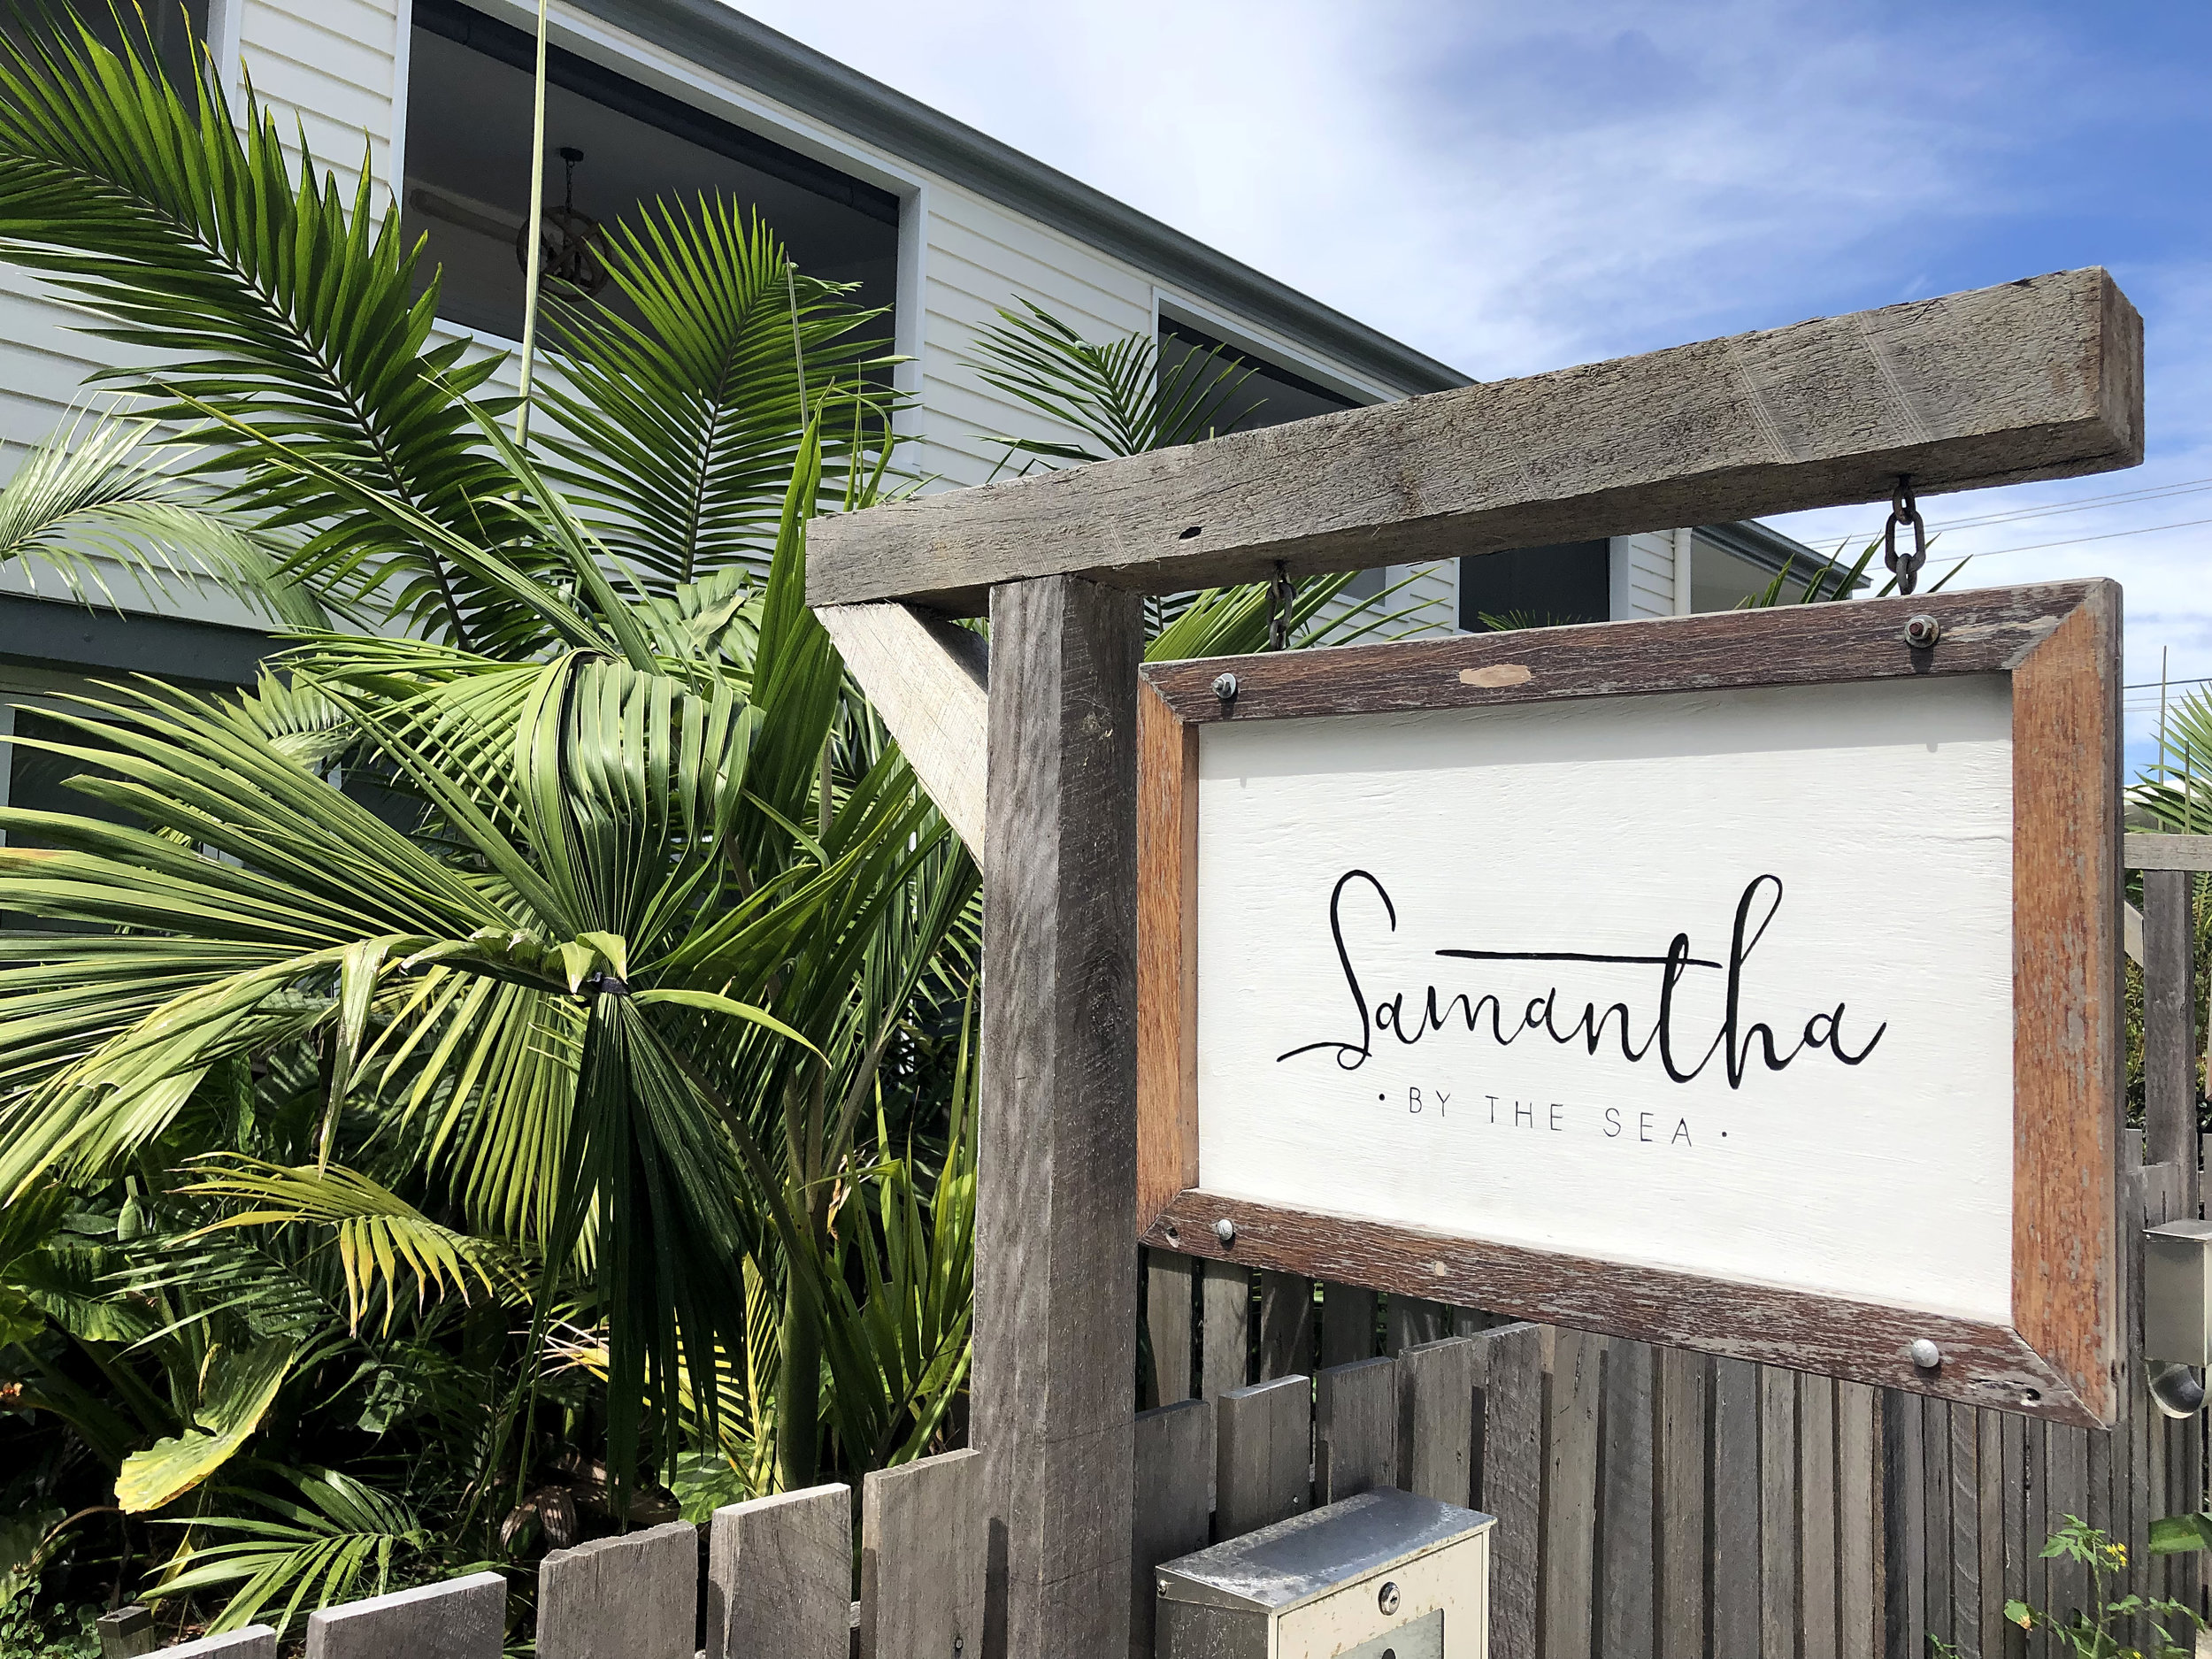 Samantha By The Sea, Run Byron Bay, Whisky & Hide, Harry Austin Bags - Local Business Signwriting